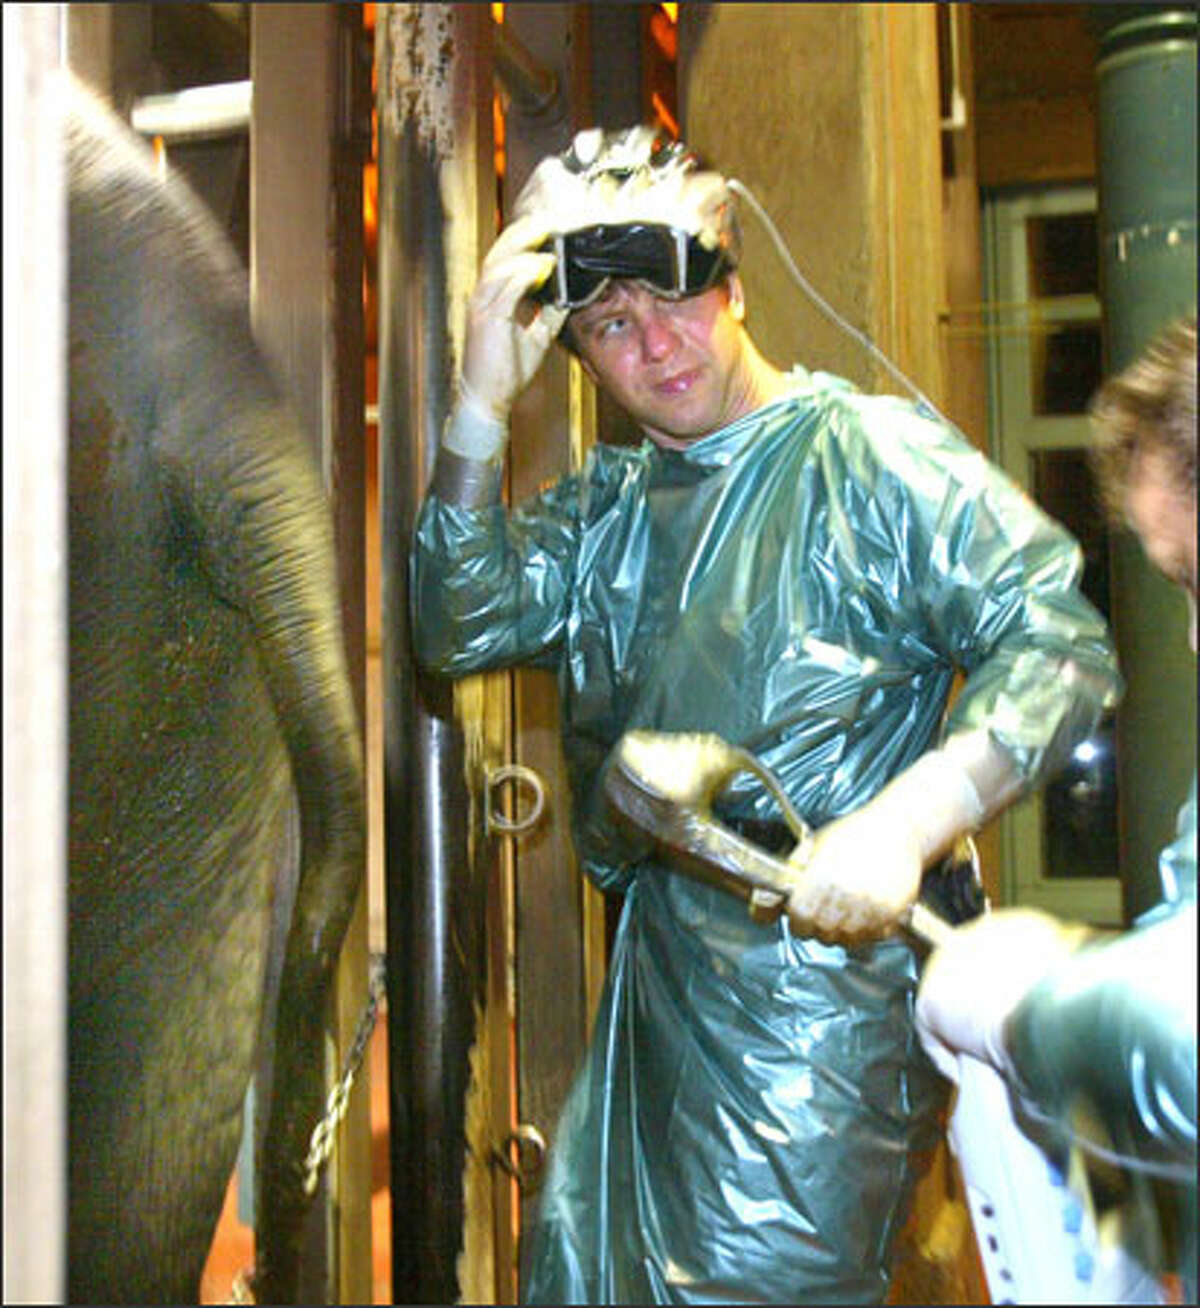 Dr. Thomas Hildebrandt, a German expert in elephant reproduction, prepares to use a probe to see if Chai is ready for artificial insemination at the Woodland Park Zoo. The hours-long process is a tricky business.